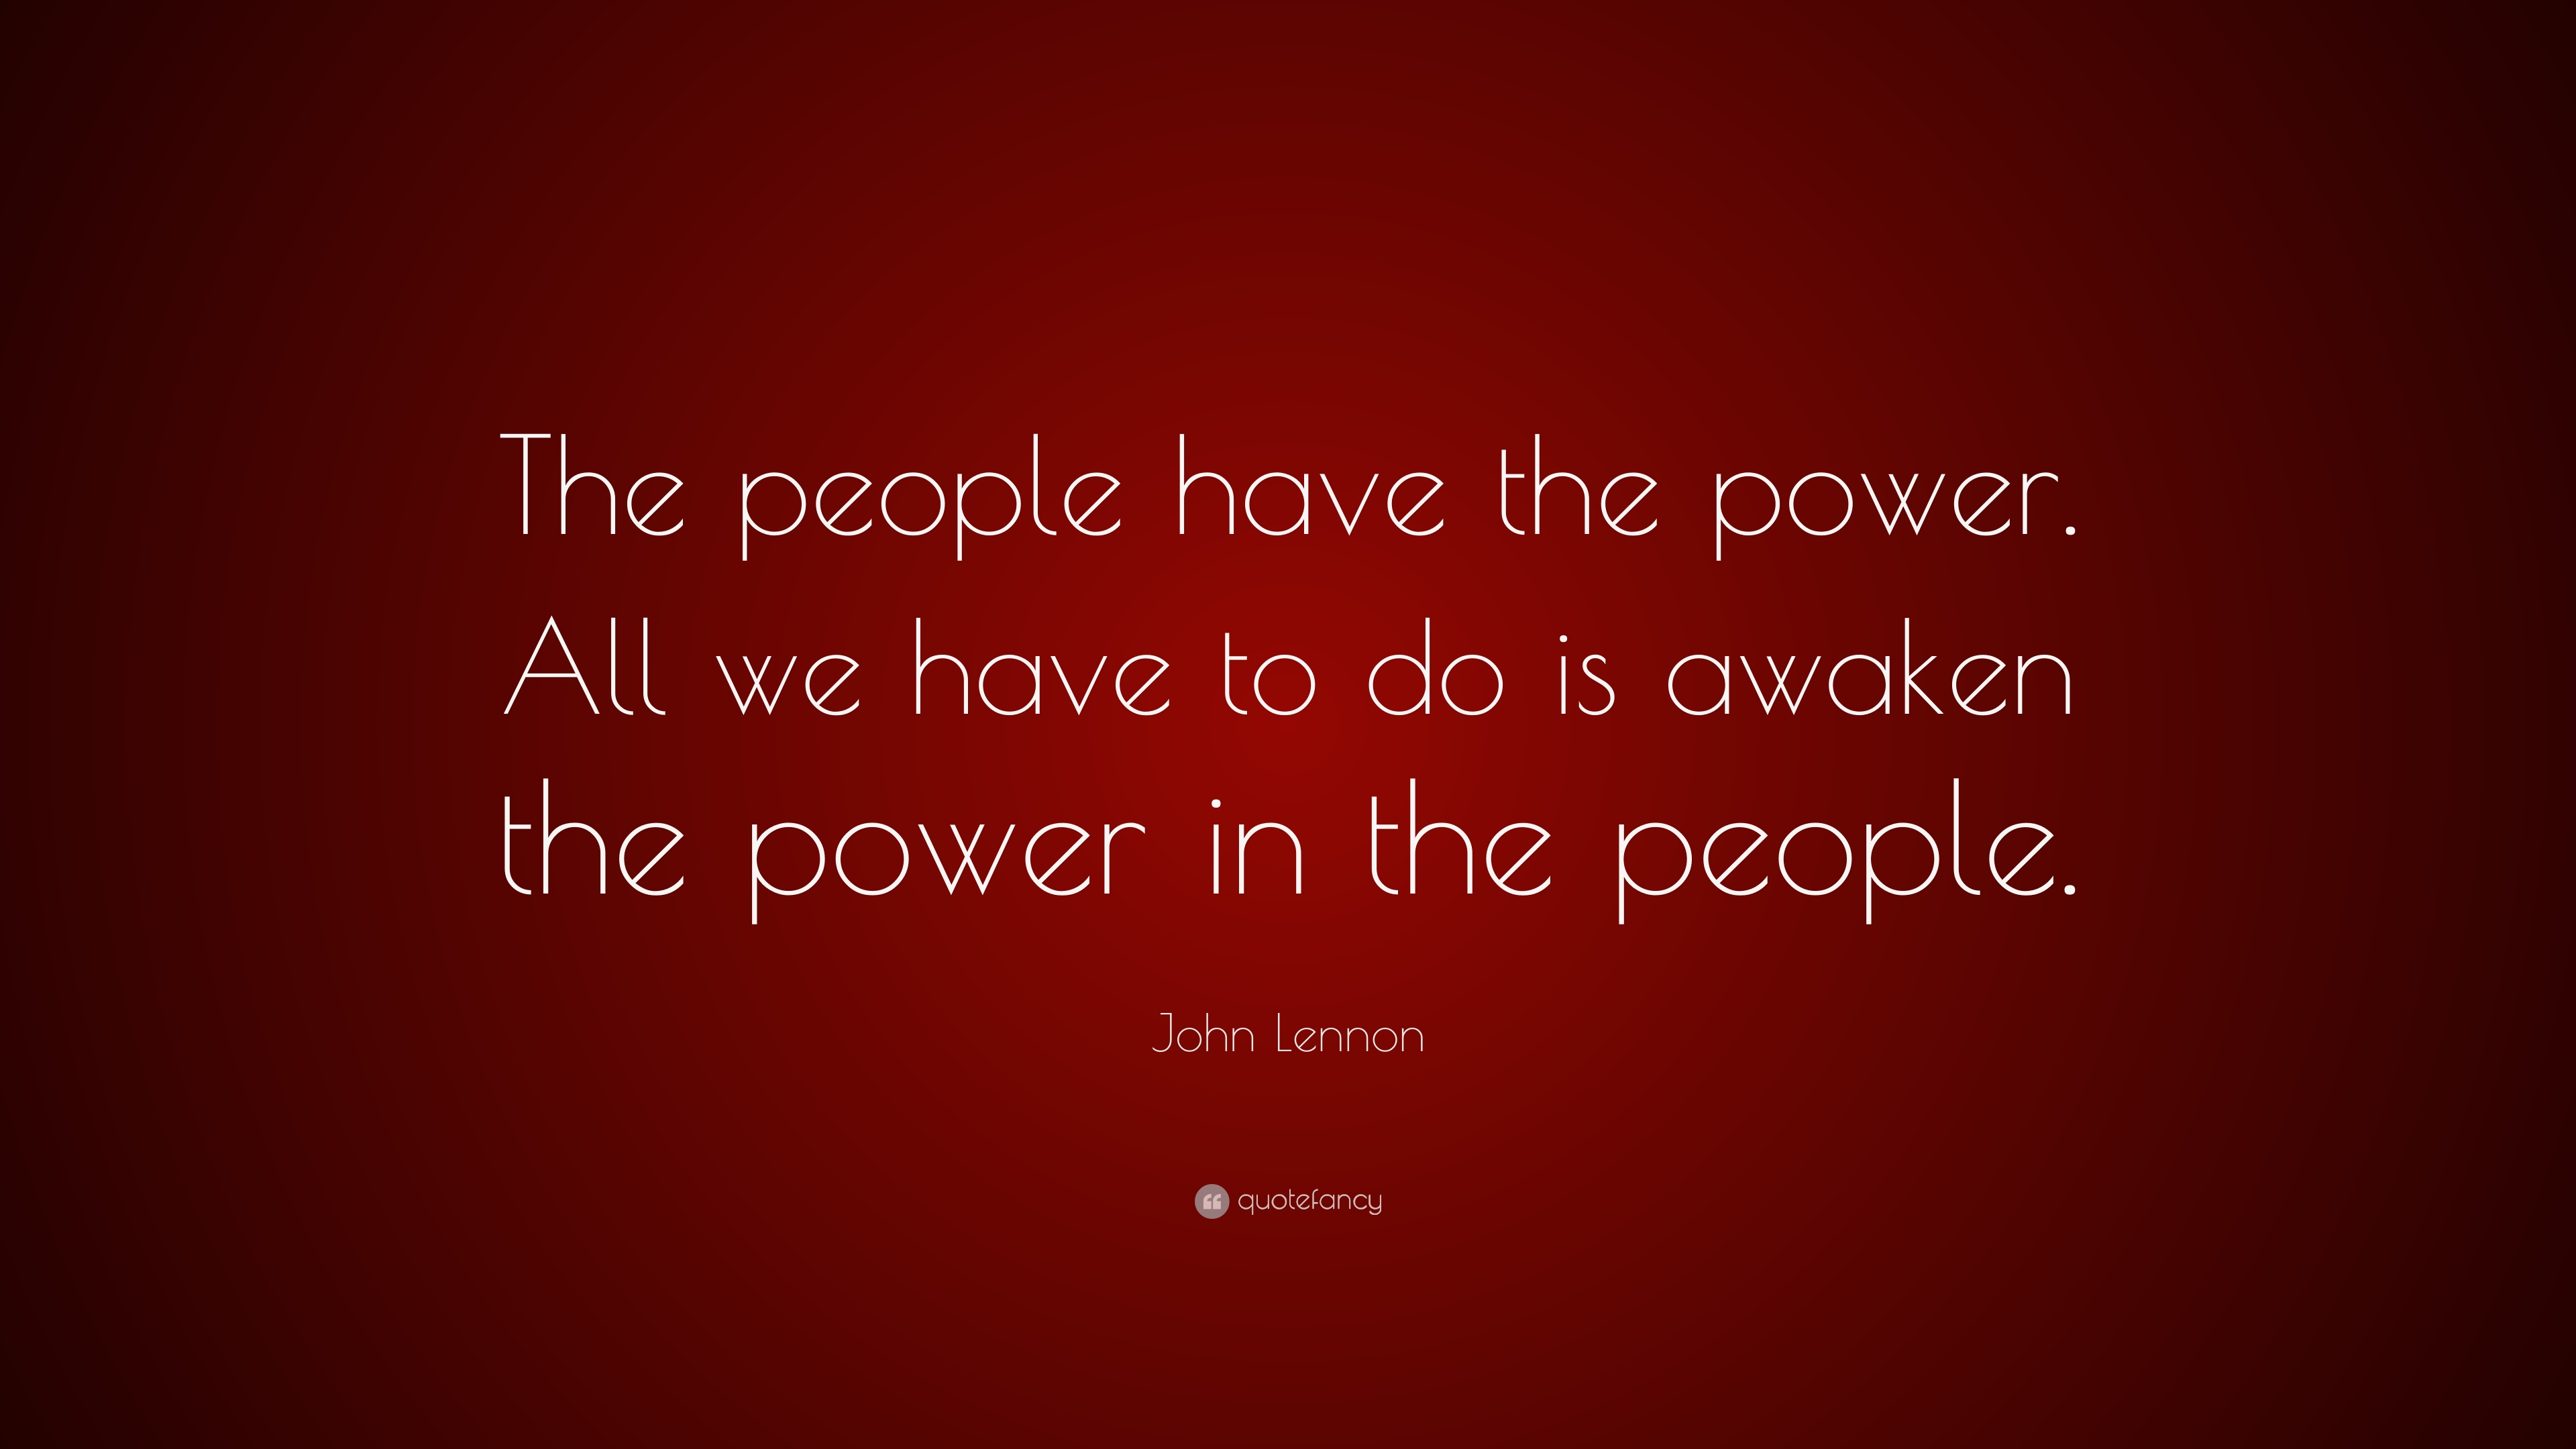 John Lennon Quote The People Have The Power All We Have To Do Is